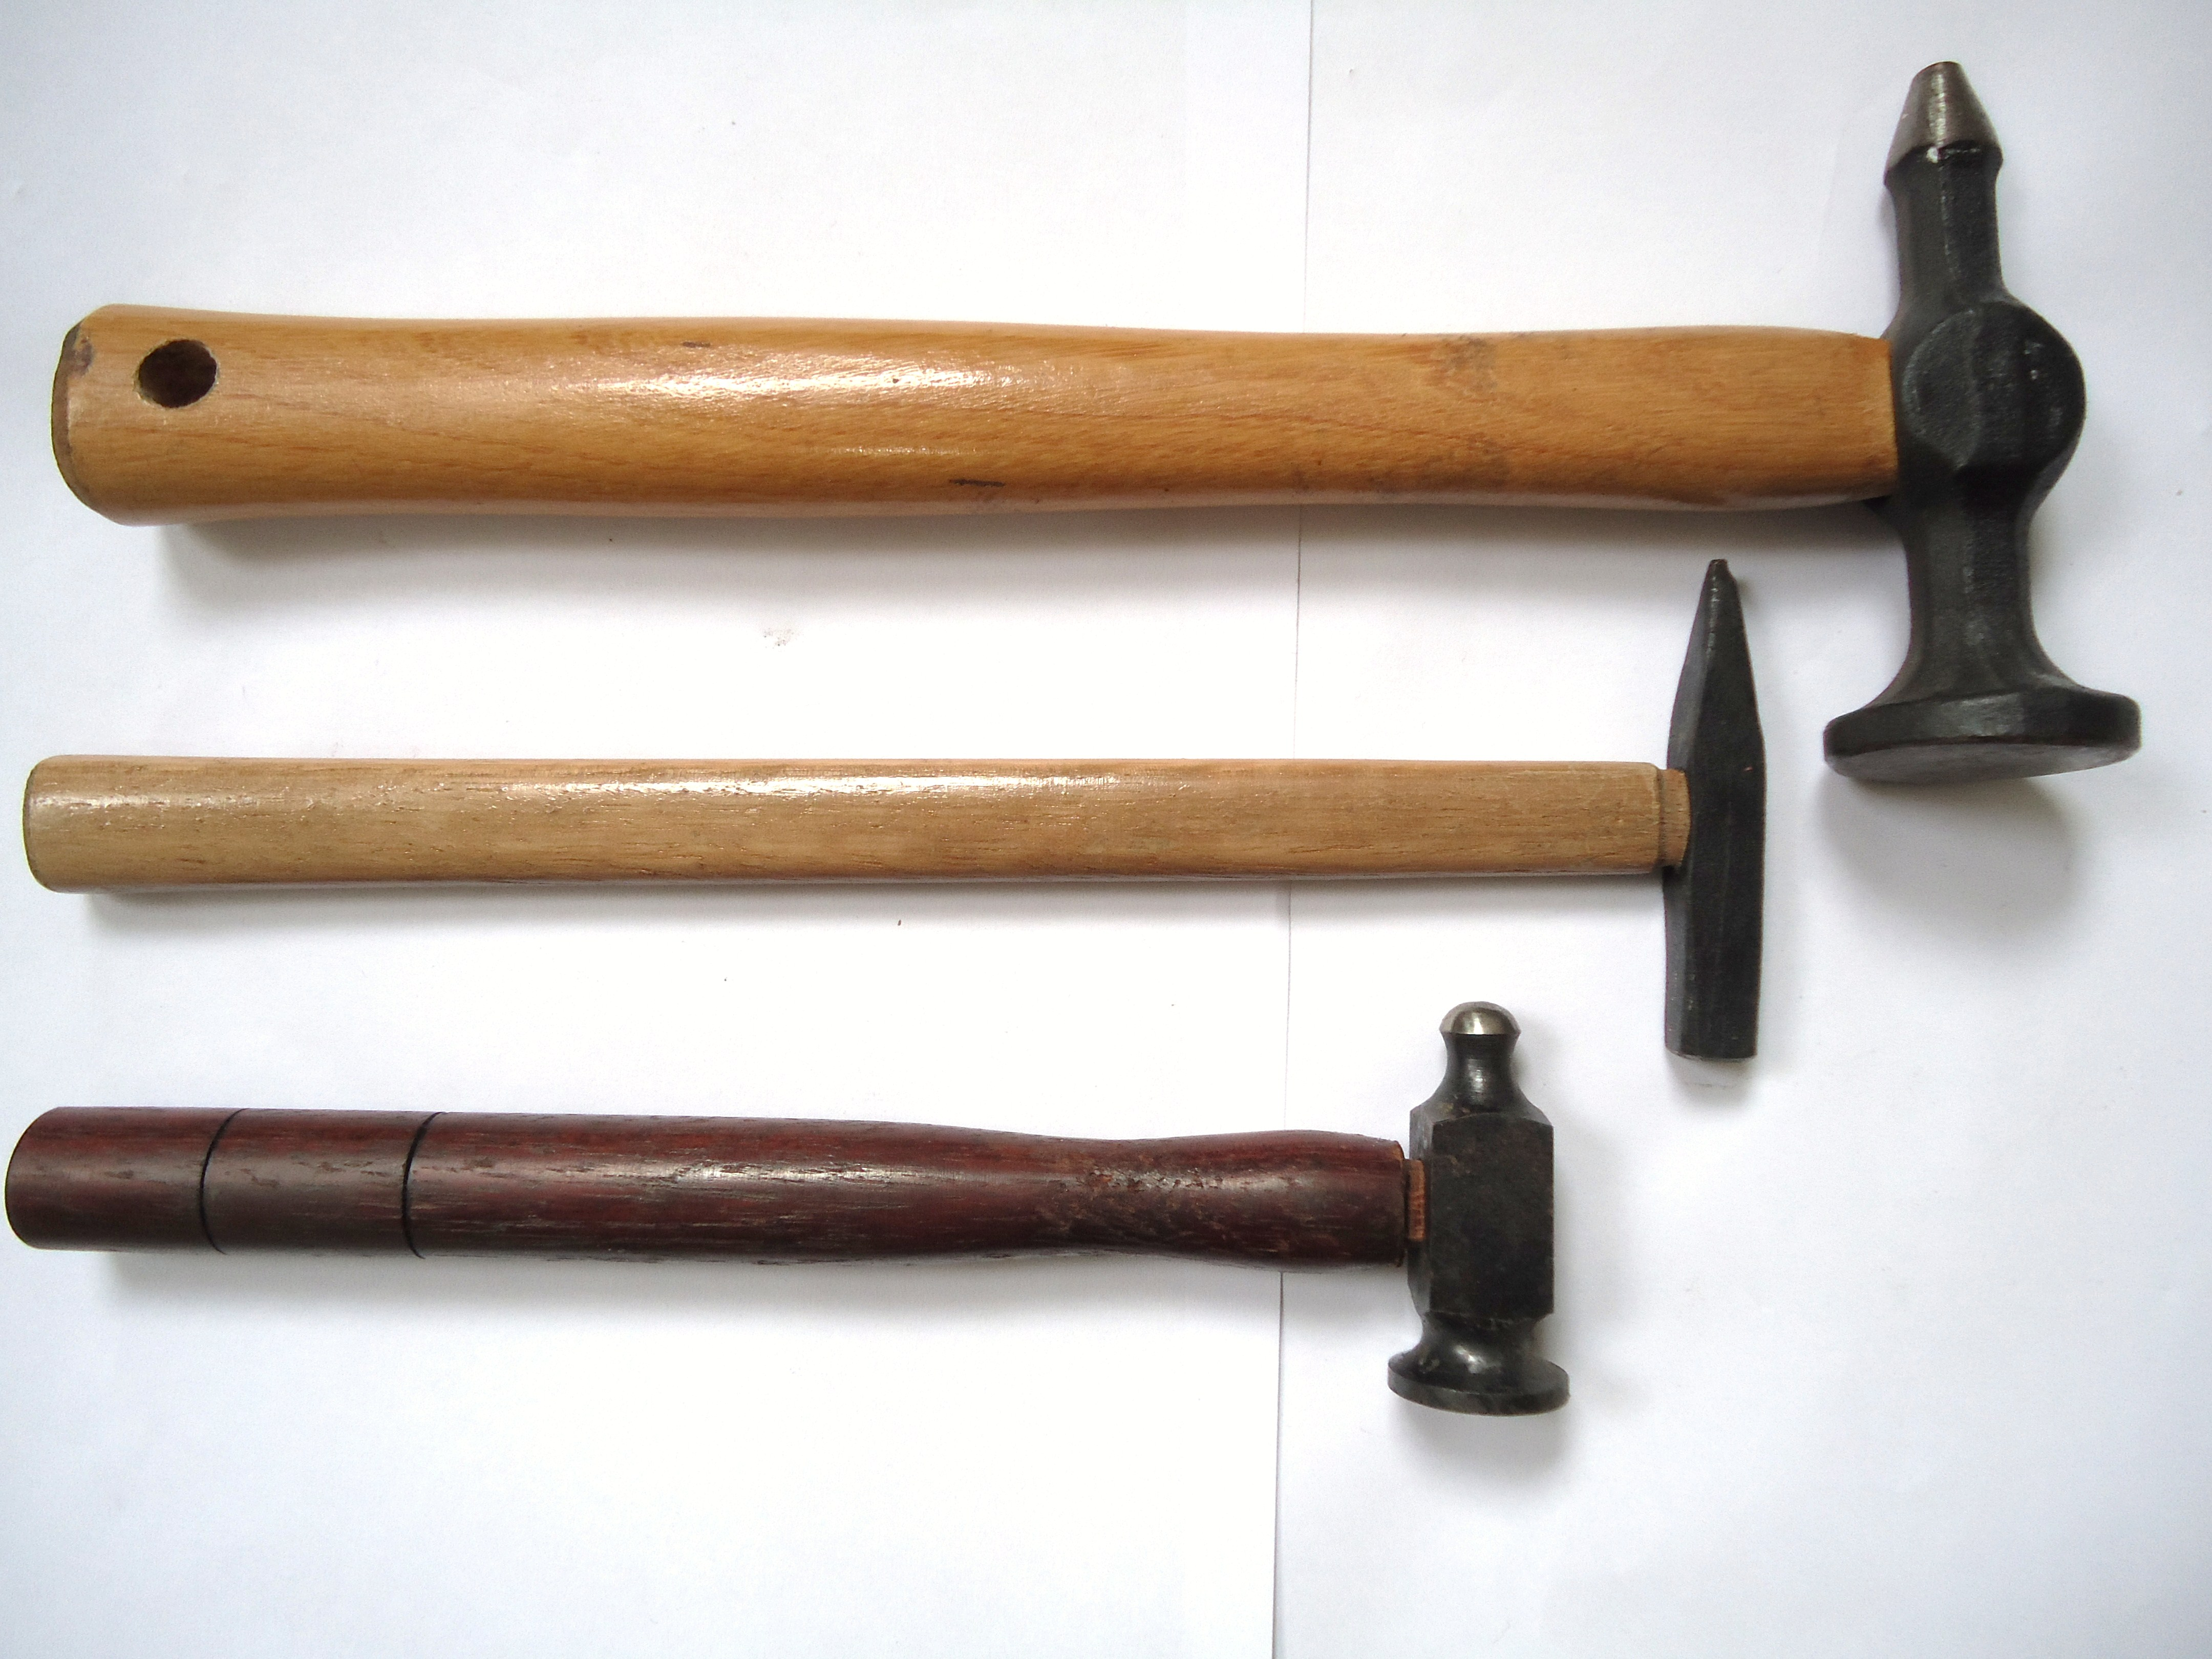 types of antique hammers. file:jewellery hammers (2).jpg types of antique